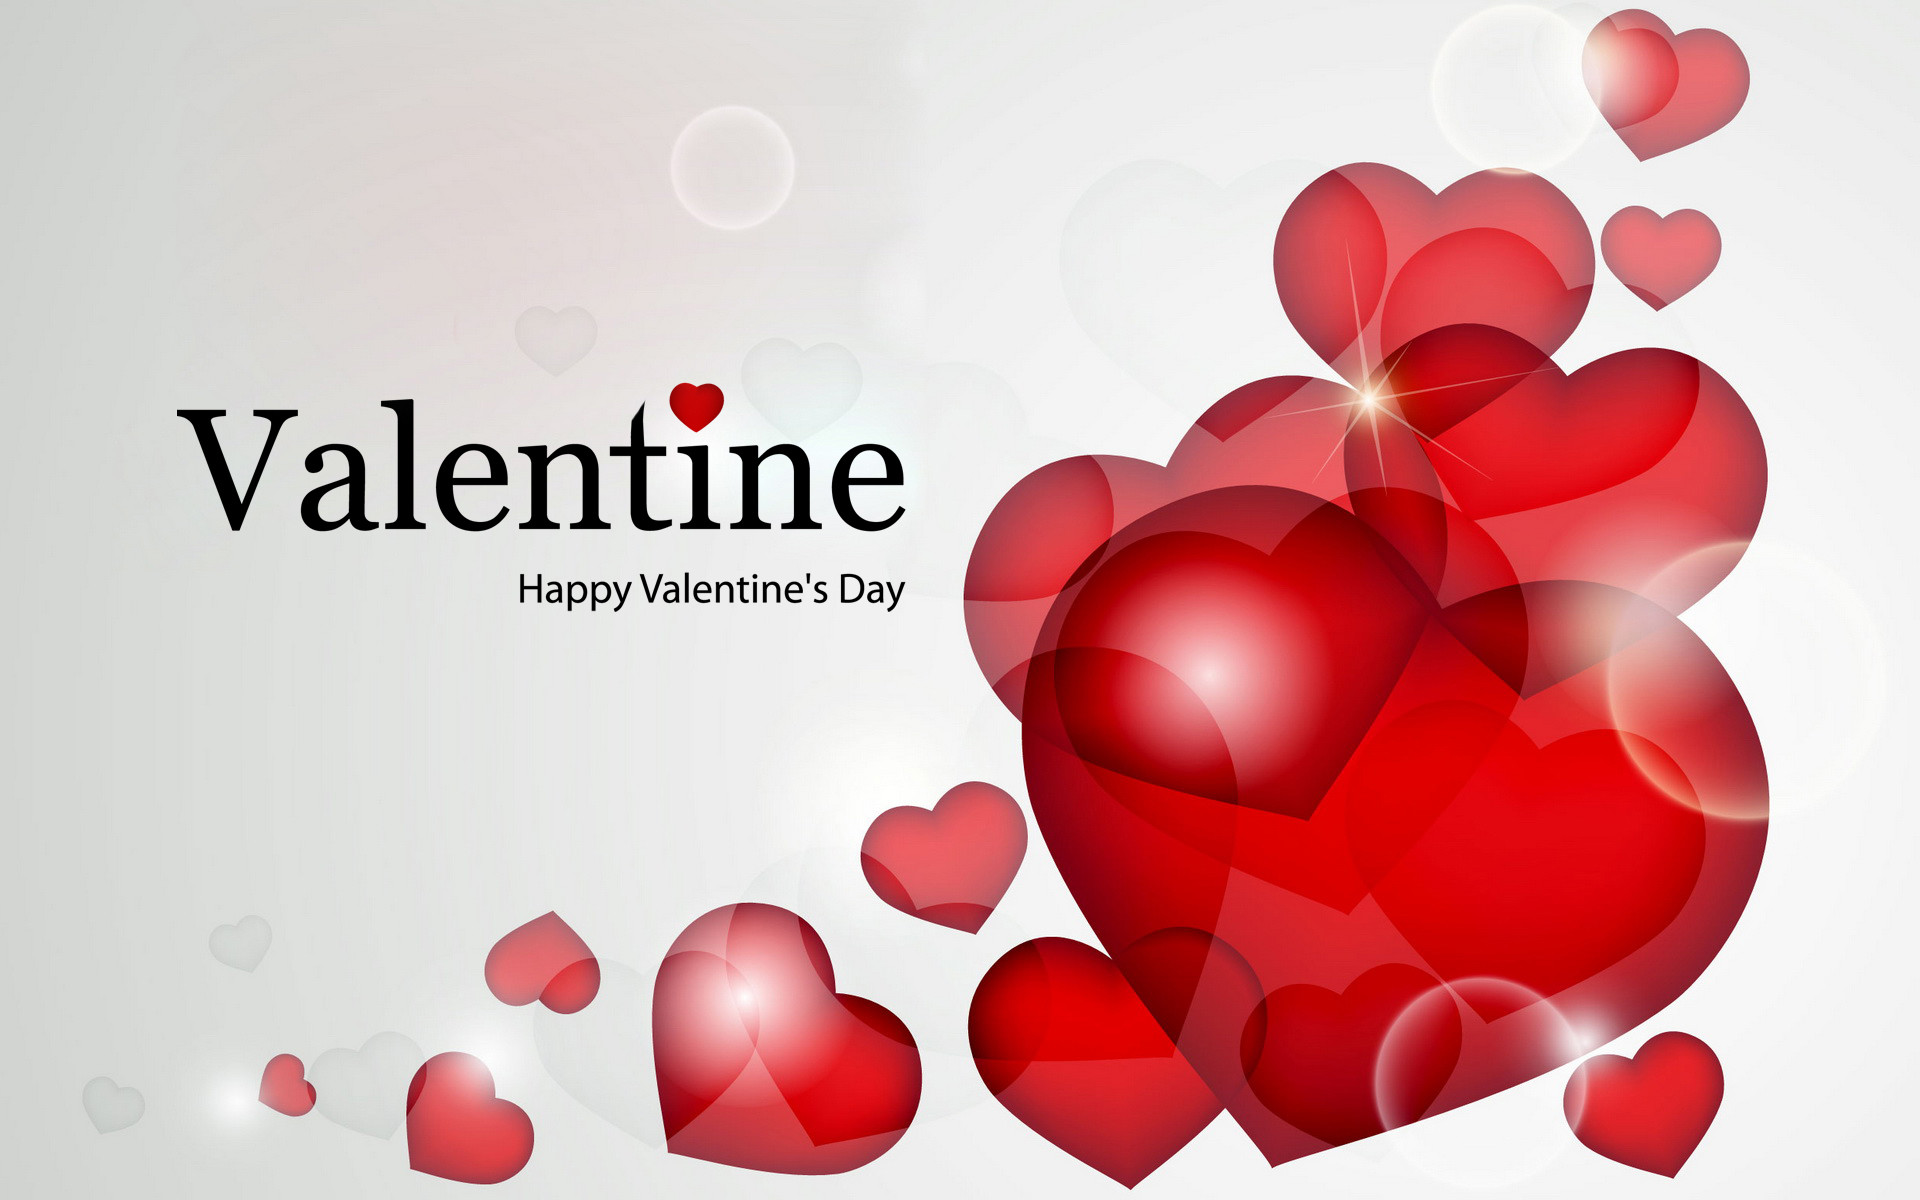 Cute Valentines Day Backgrounds 62 images 1920x1200